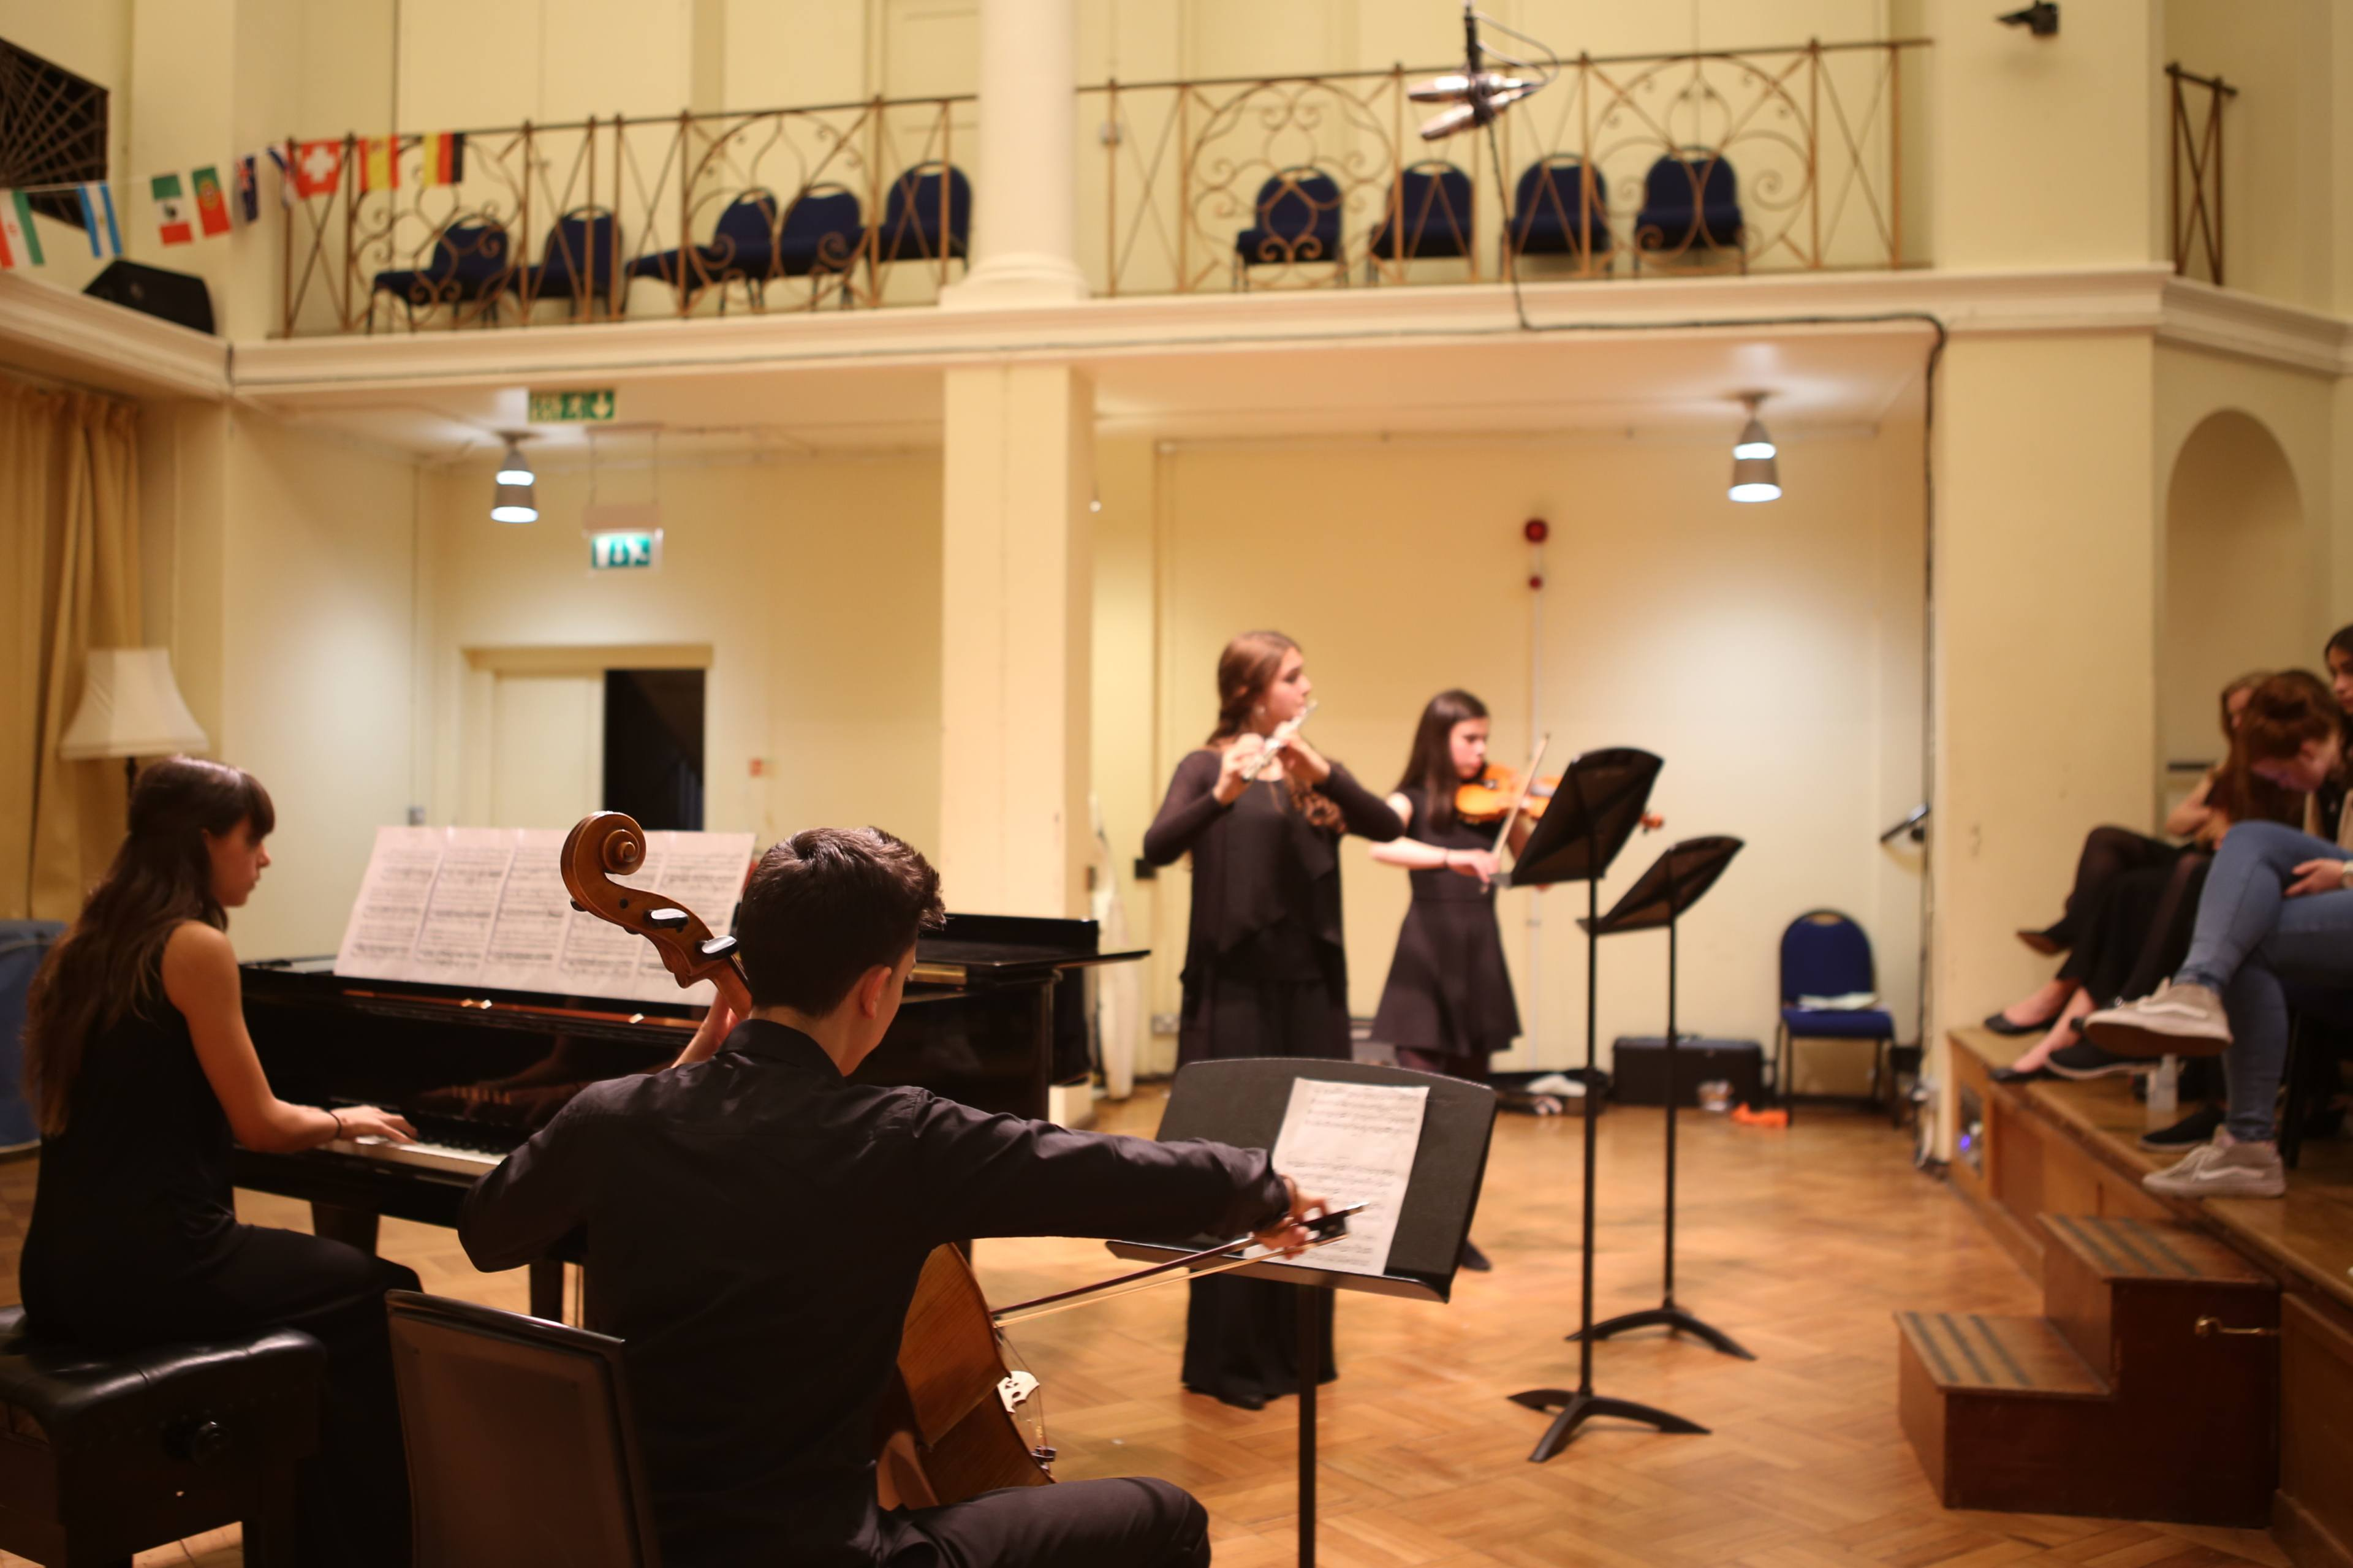 Chamber group performance at chamber music programme in England, UK